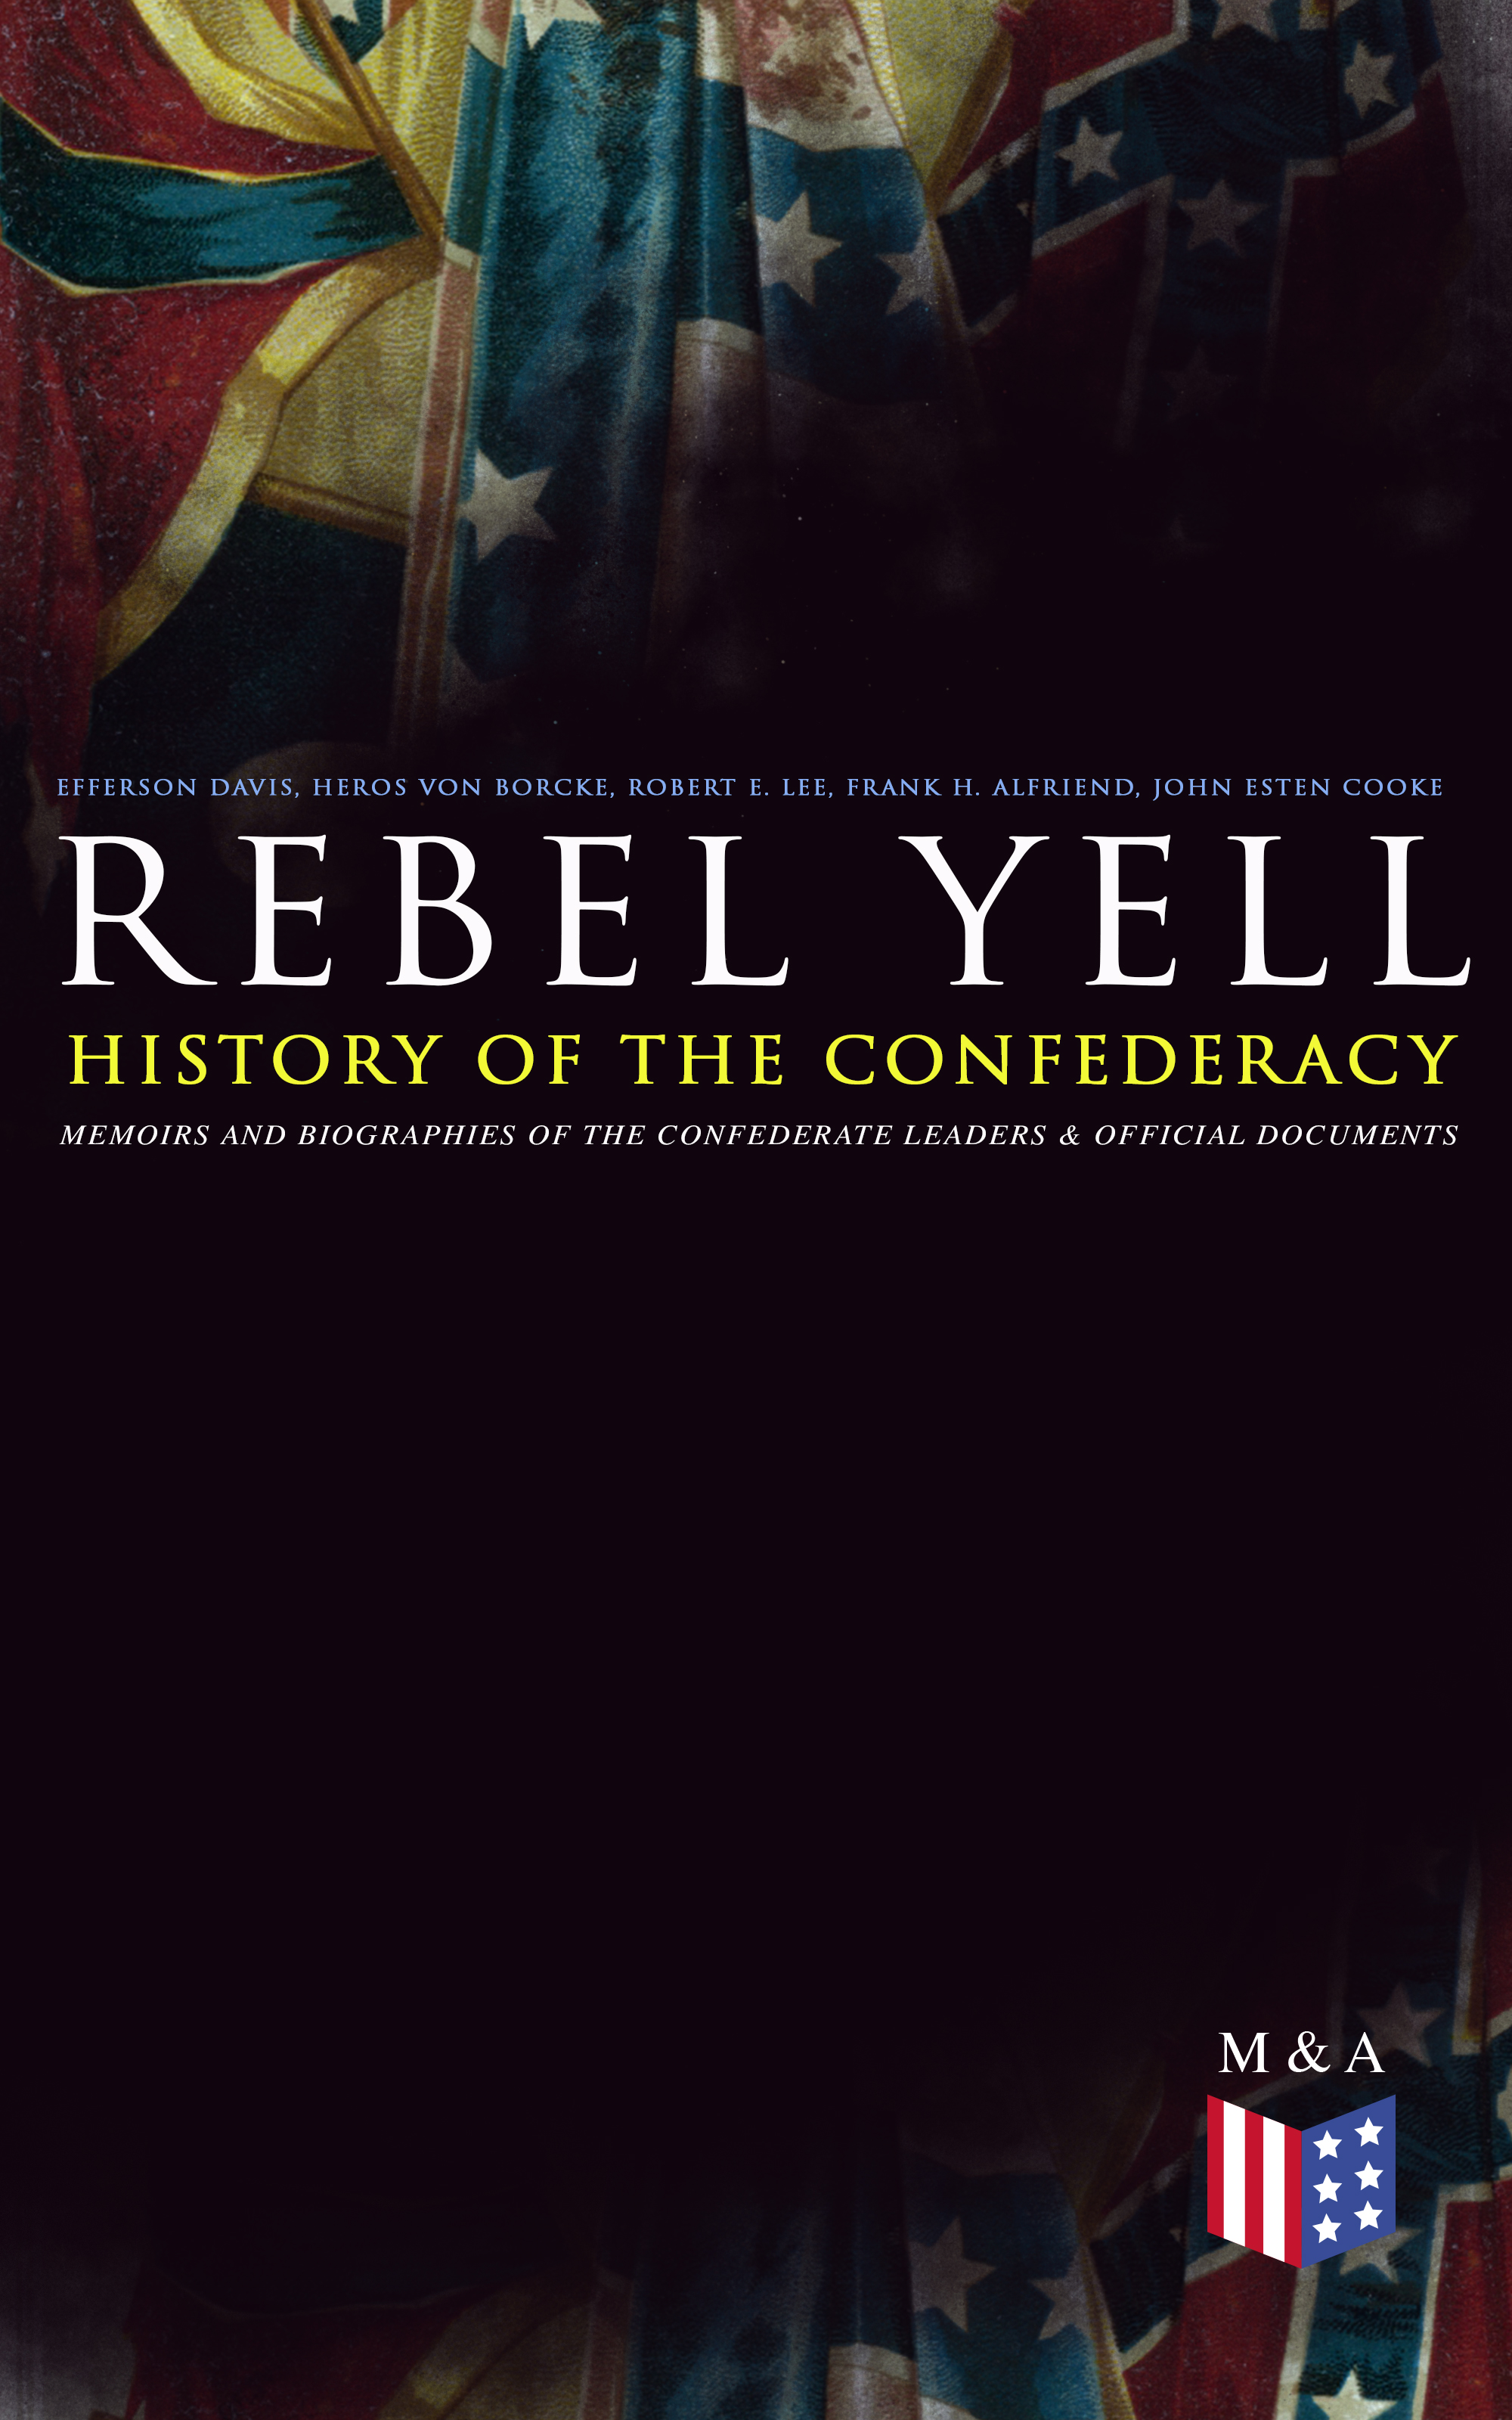 Robert E. Lee REBEL YELL: History of the Confederacy, Memoirs and Biographies of the Confederate Leaders & Official Documents